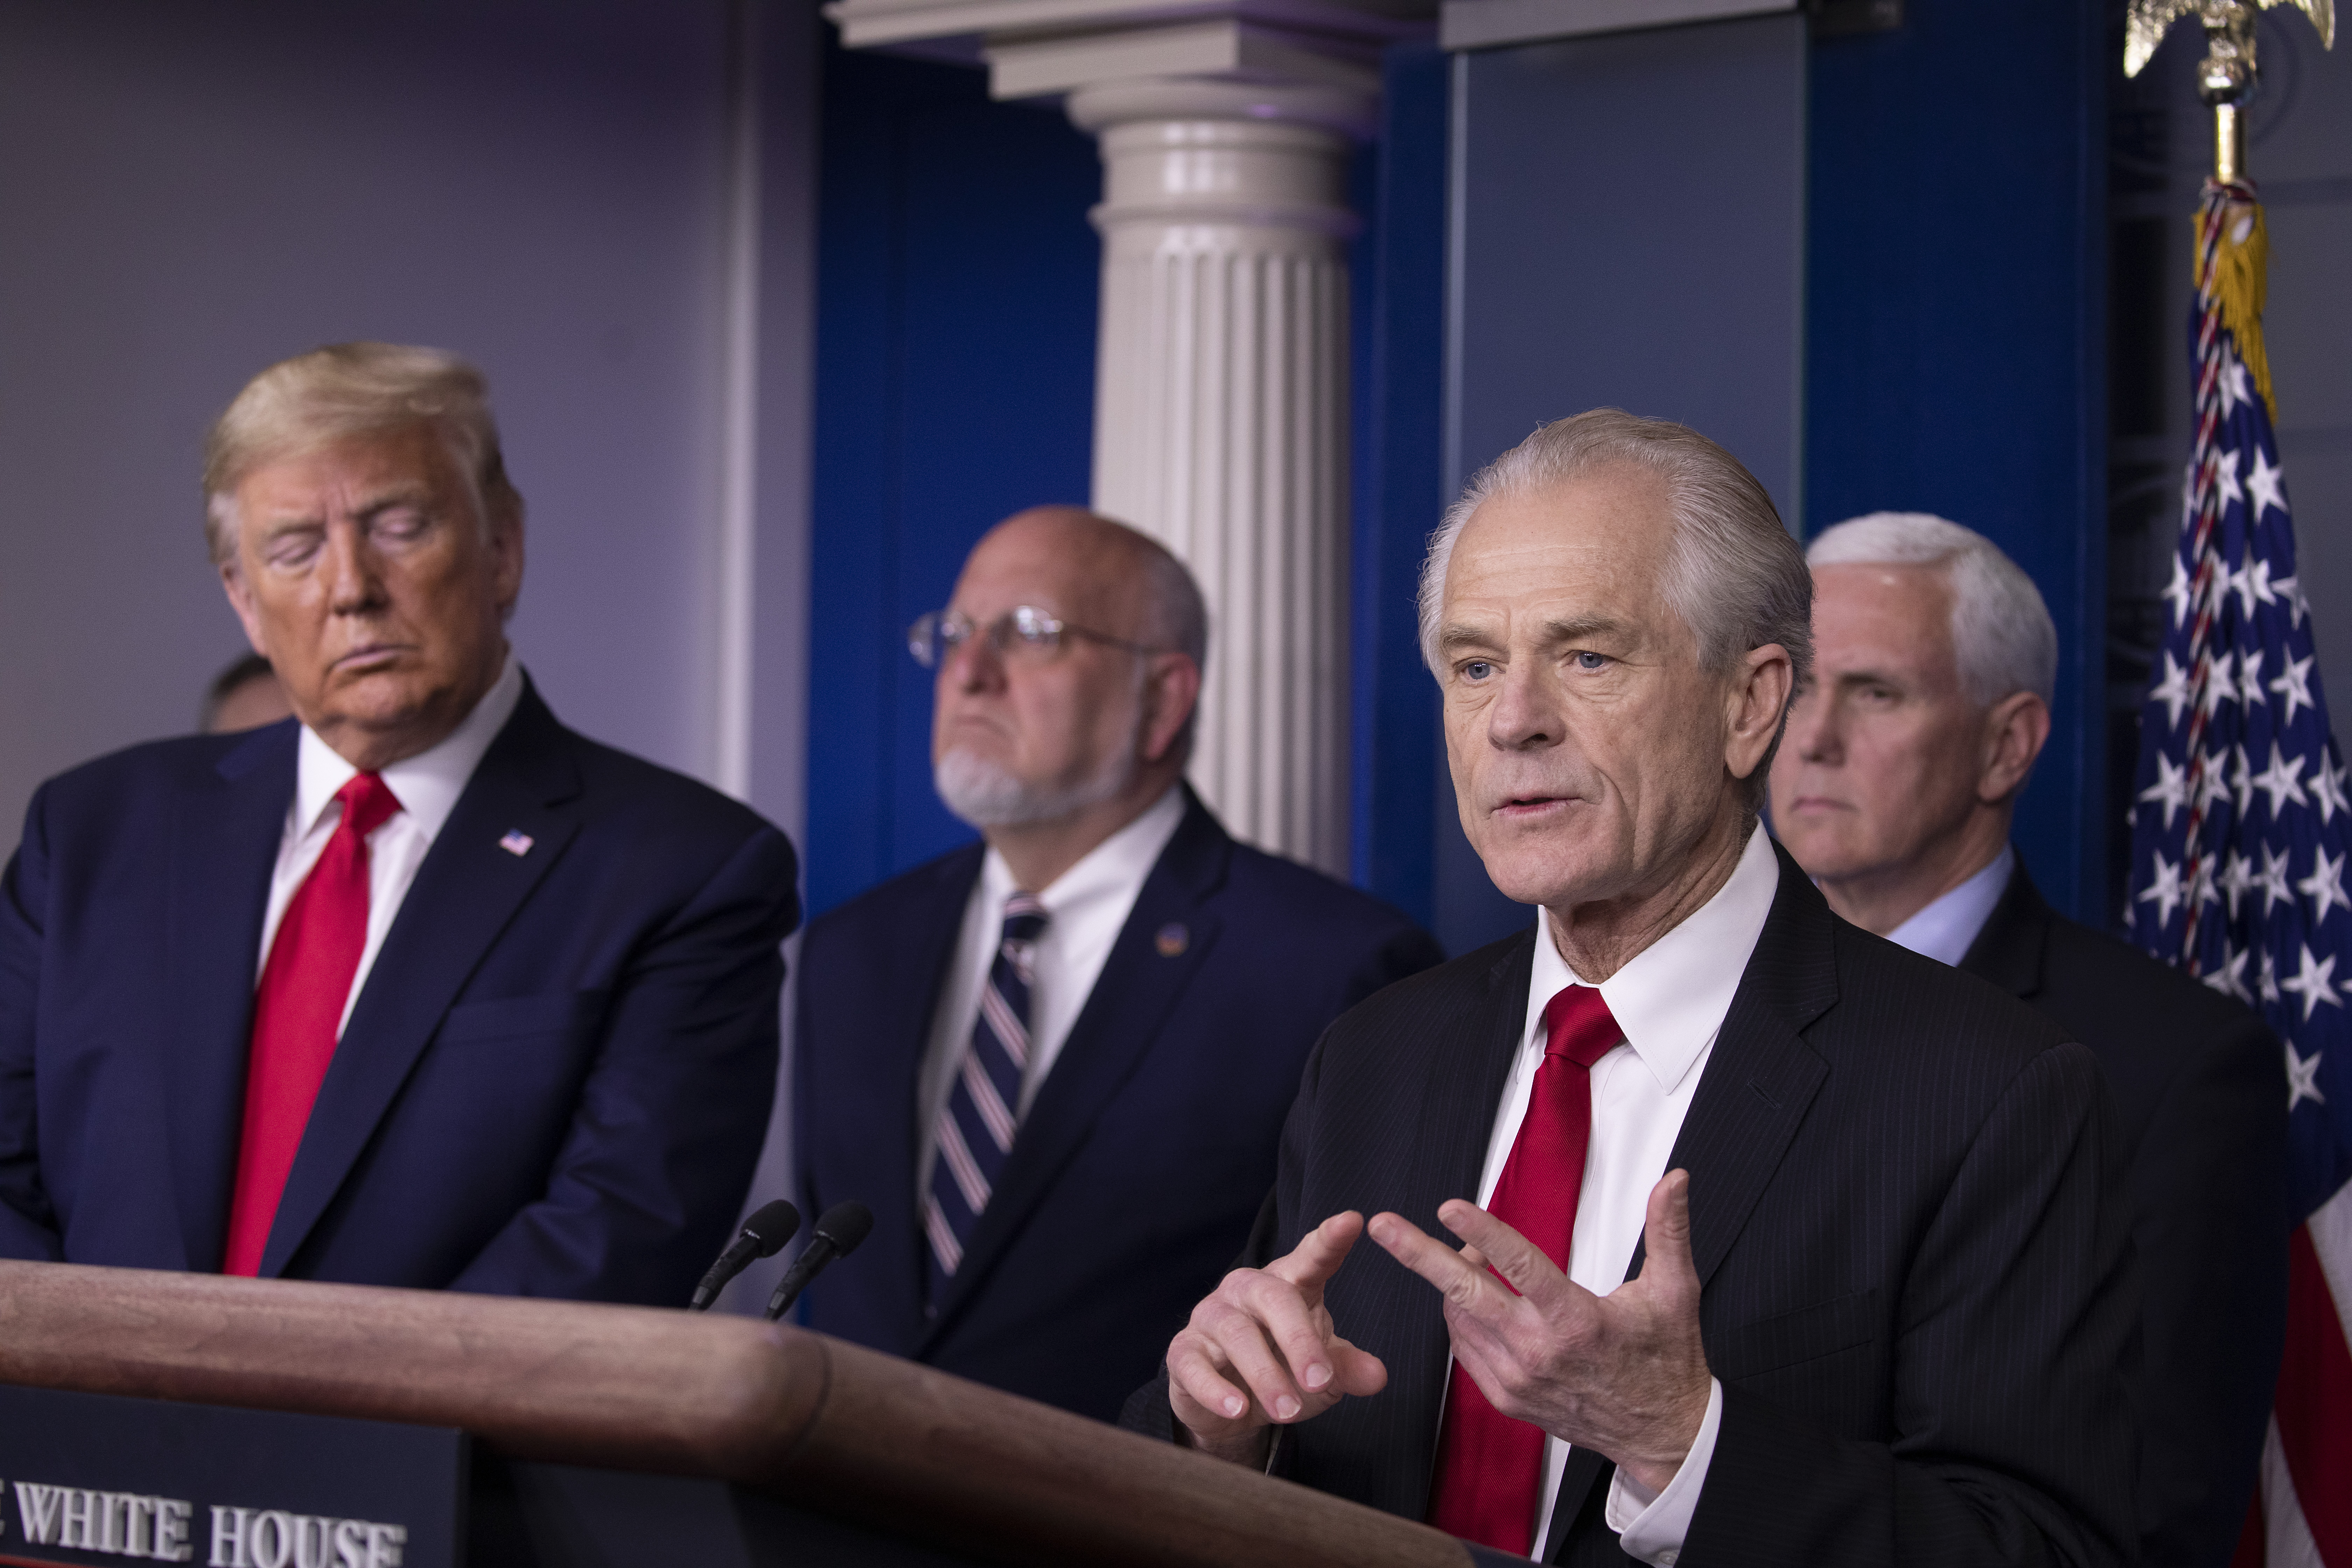 WASHINGTON, DC - MARCH 22: Peter Navarro, Director of the National Trade Council, speaks at the daily coronavirus briefing as President Donald Trump, Dr. Robert Redfield, Director of the Center for Disease Control and Prevention and Vice President Mike Pence listen in the James Brady Press Briefing Room at the White House on March 22, 2020 in Washington, DC. During the briefing President Trump announced thatthe National Guard will be deployed to New York, Washington State and California. Congress continues to work on legislation this weekend for a trillion dollar aid package to fight the coronavirus (COVID-19) pandemic. (Photo by Tasos Katopodis/Getty Images)